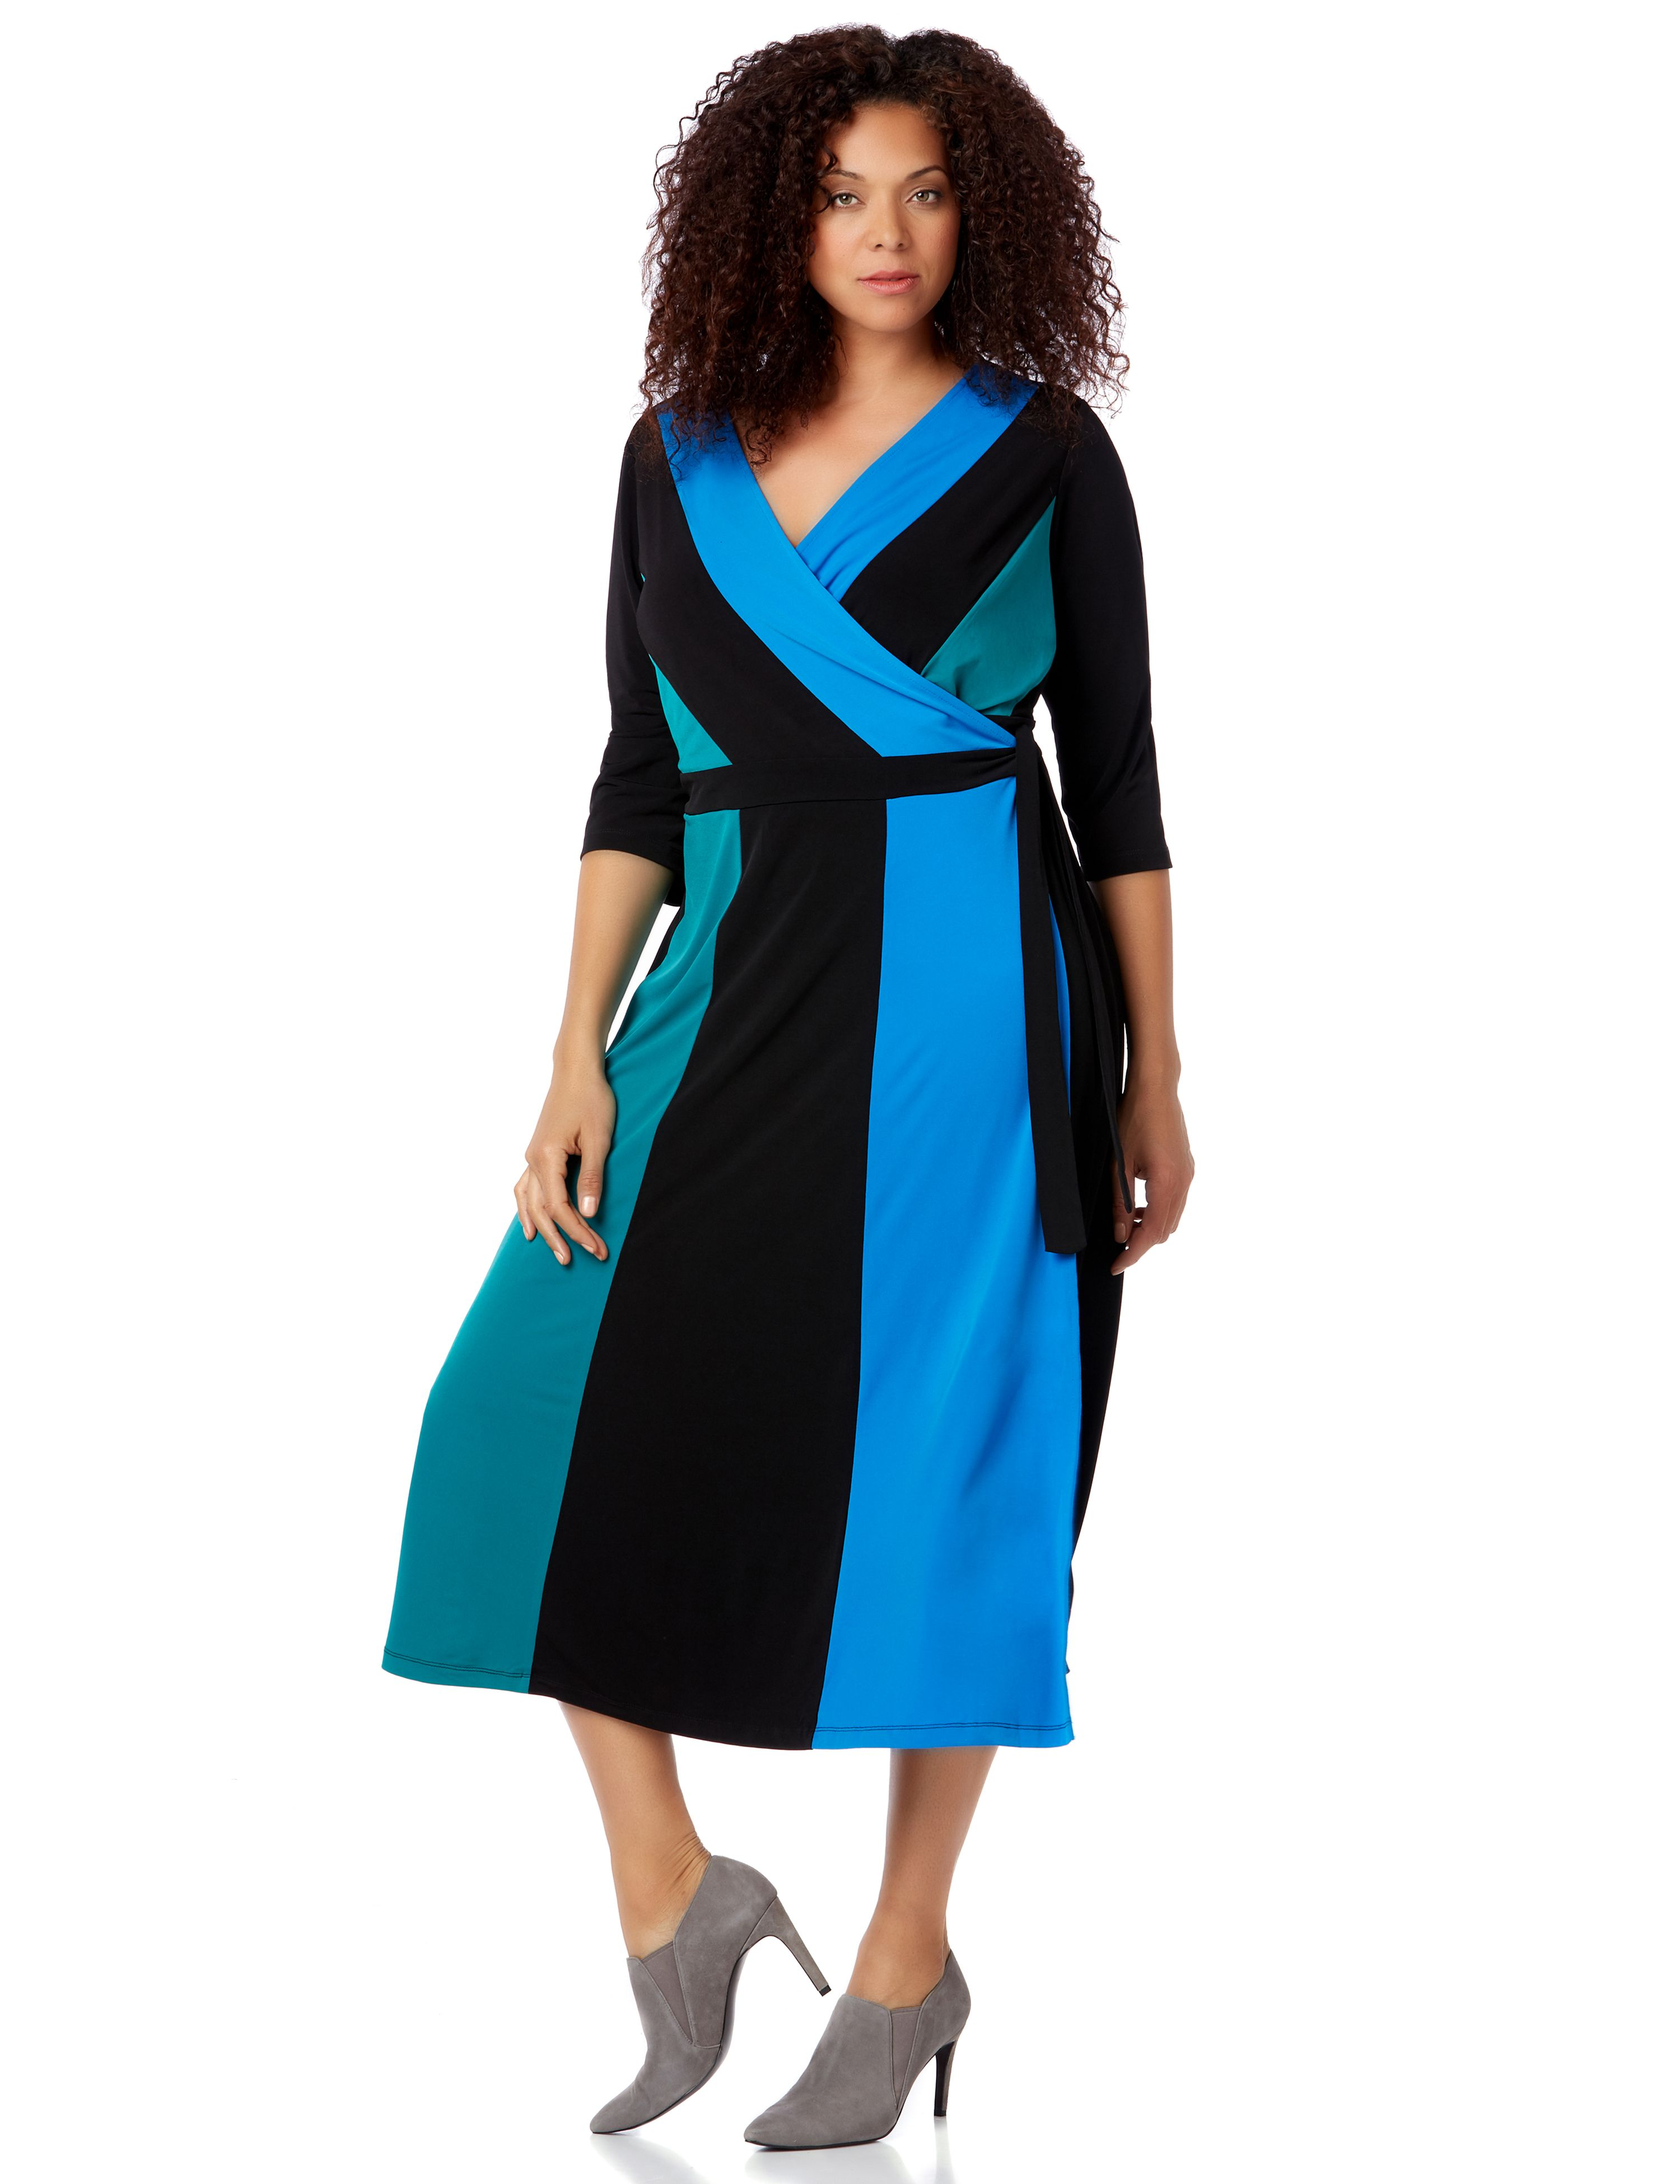 Aegean Dream Dress 1087157 ElbSlv Colorblock Faux Wrap MP-300096210